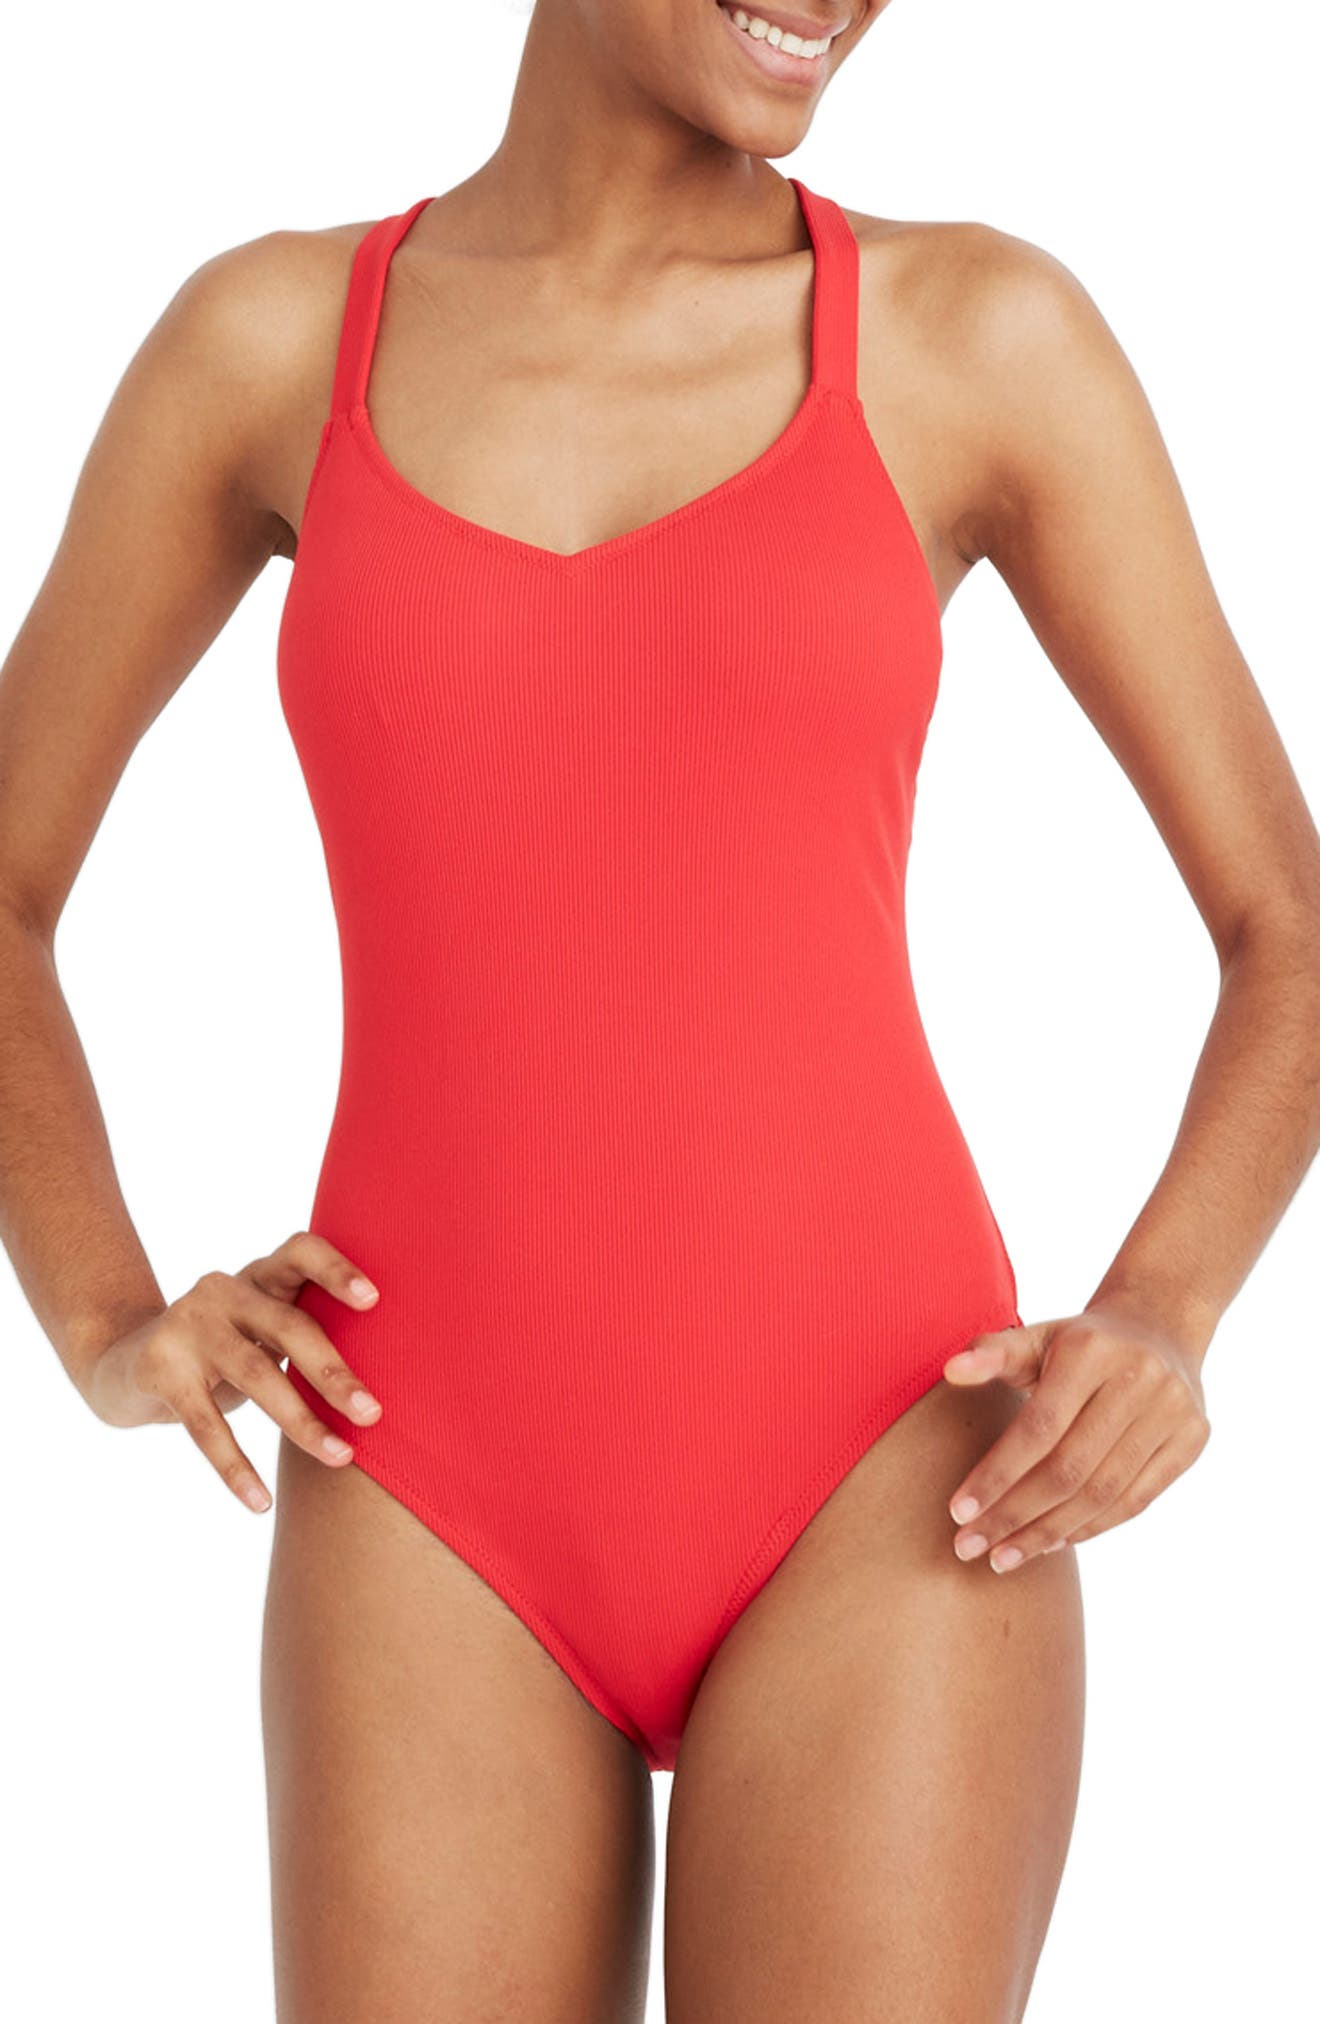 Madewell Second Wave Rib Crisscross One-Piece Swimsuit, Red